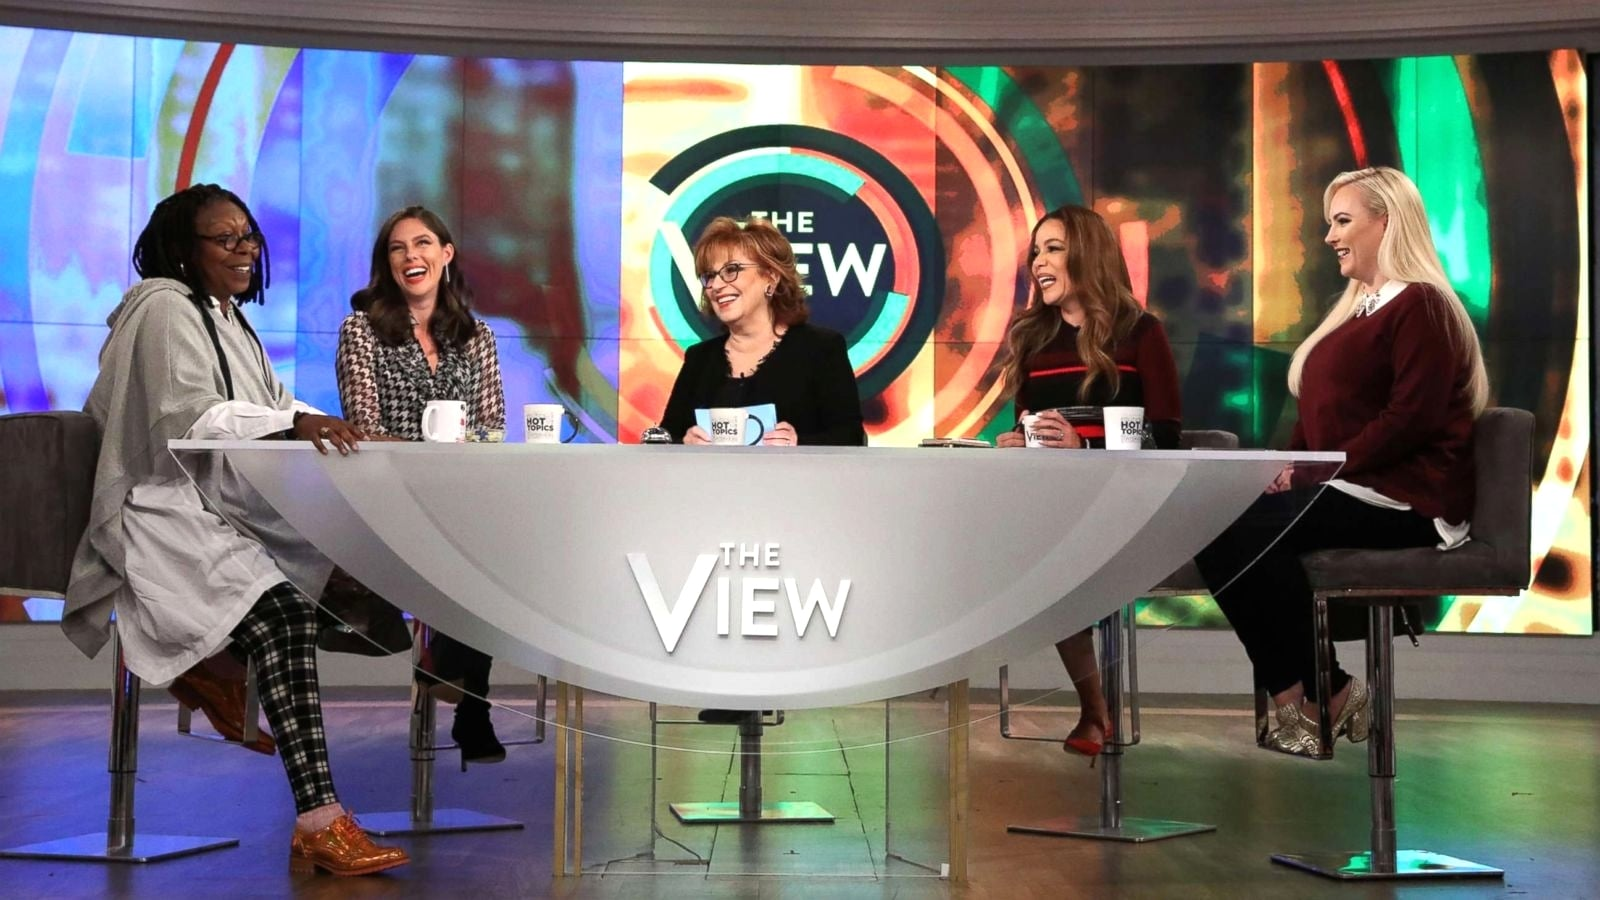 The View - Season 3 Episode 26 : Season 3, Episode 26